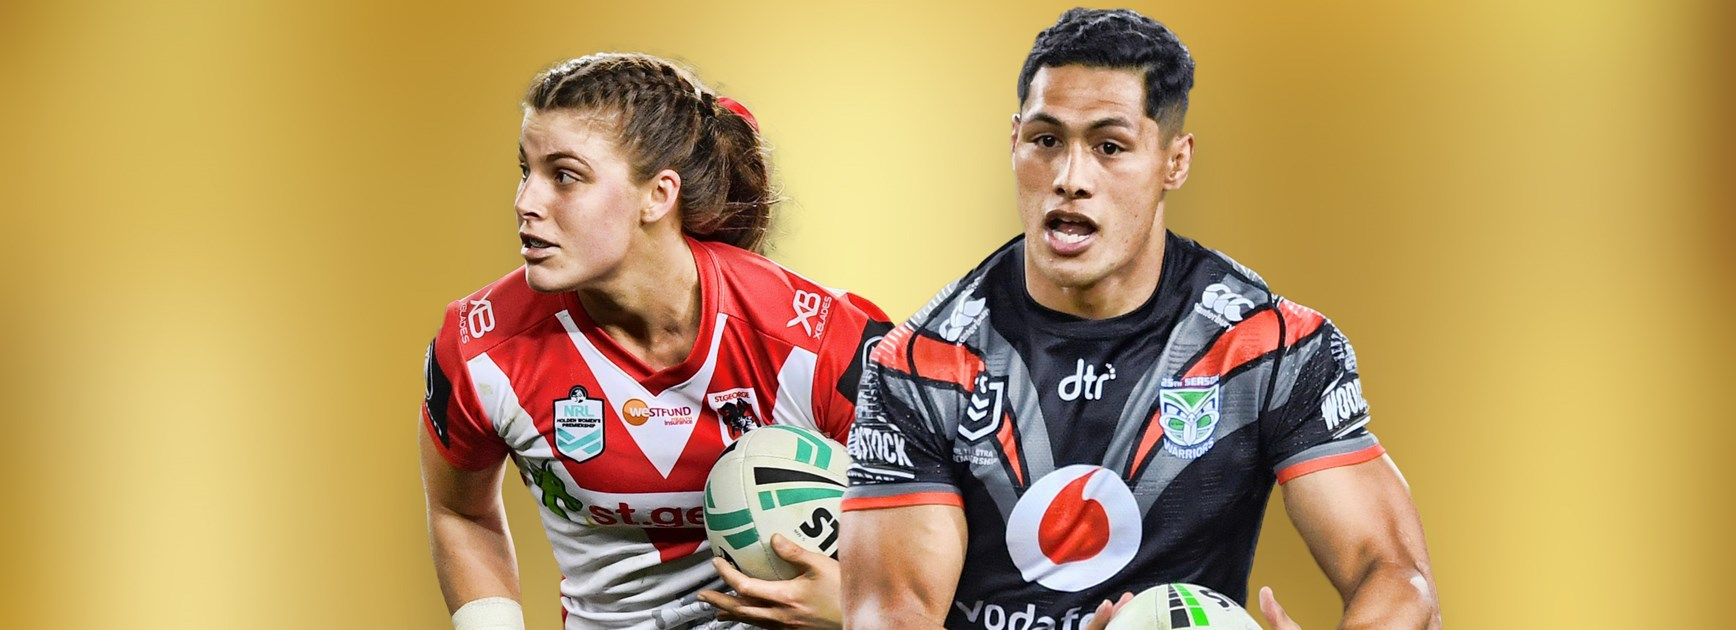 Tuivasa-Sheck, Sergis named 2019 Golden Boot winners